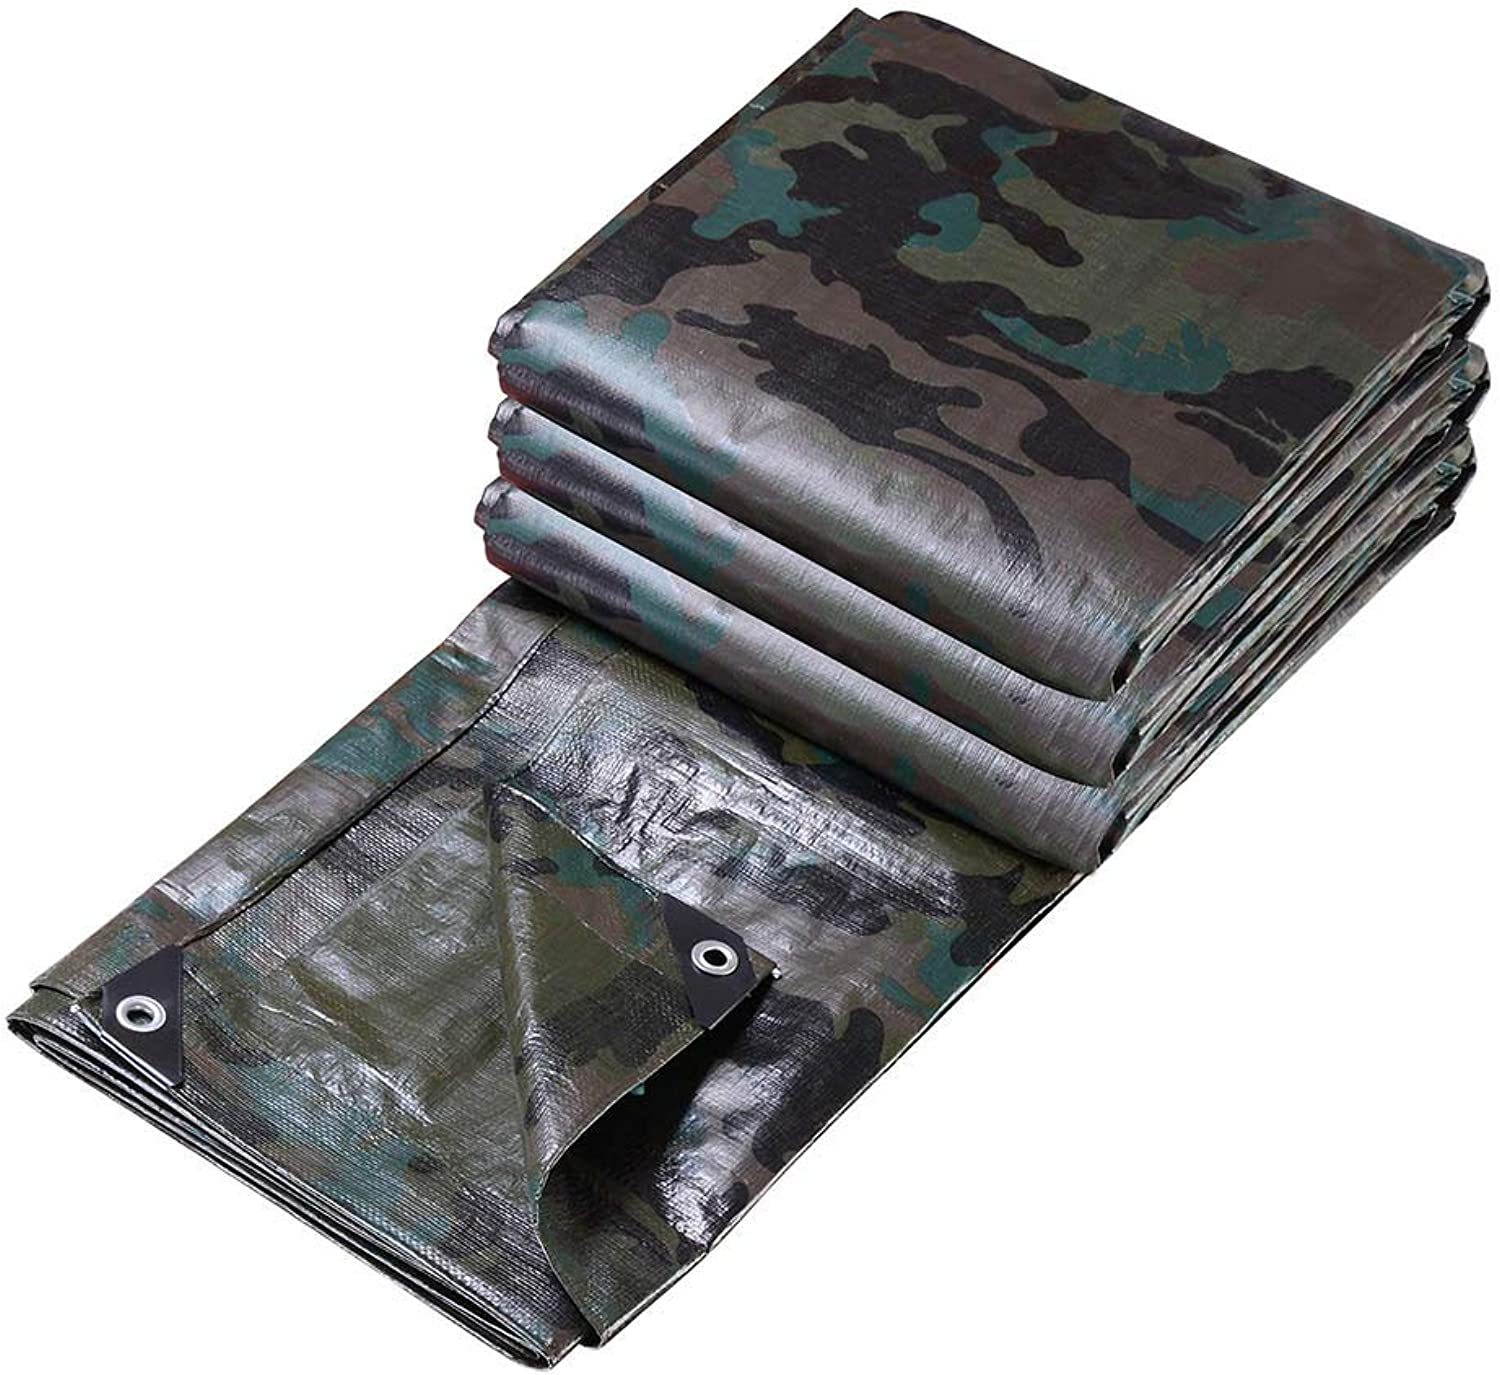 Poly Tarp Reinforced All Purpose 7 Mil Waterproof UV Resistant Cover Shelter Tarpaulin Camouflage AU Delivery